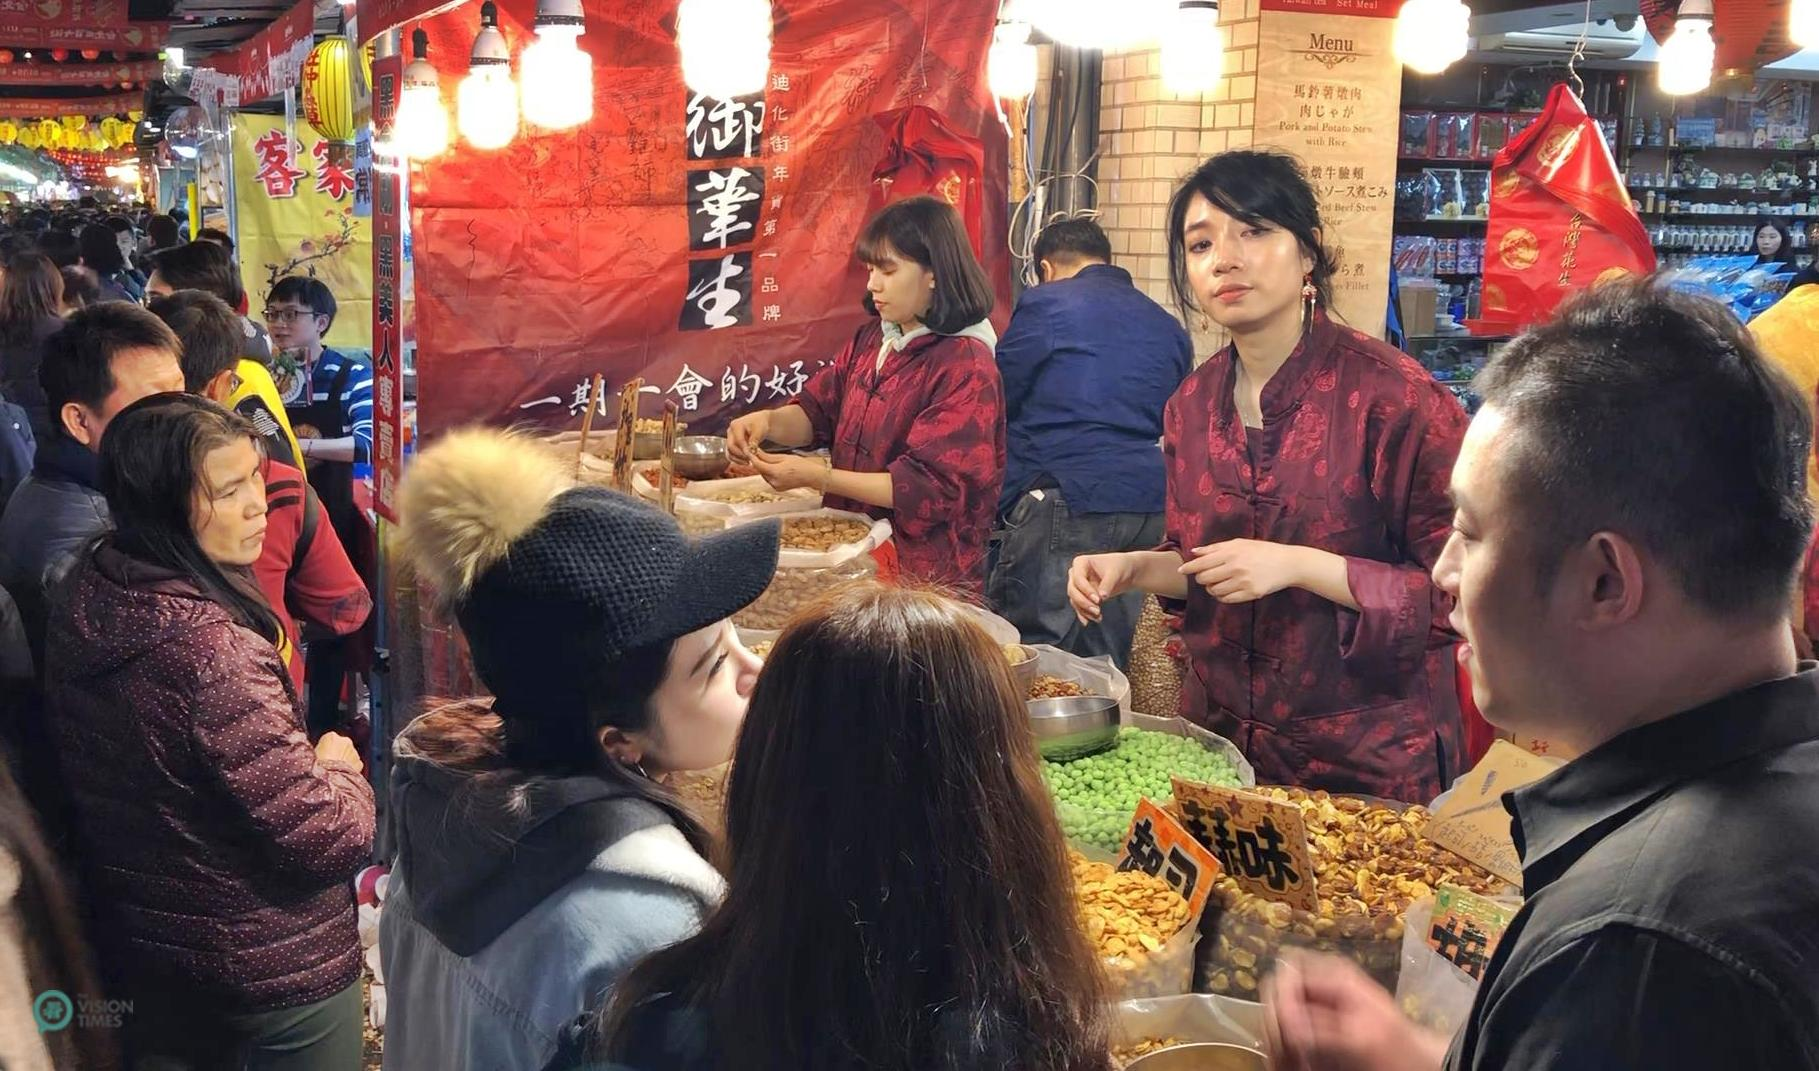 Taiwanese traditionally purchase peanuts and pistachios for the Lunar New Year holiday. (Image: Billy Shyu / Vision Times)